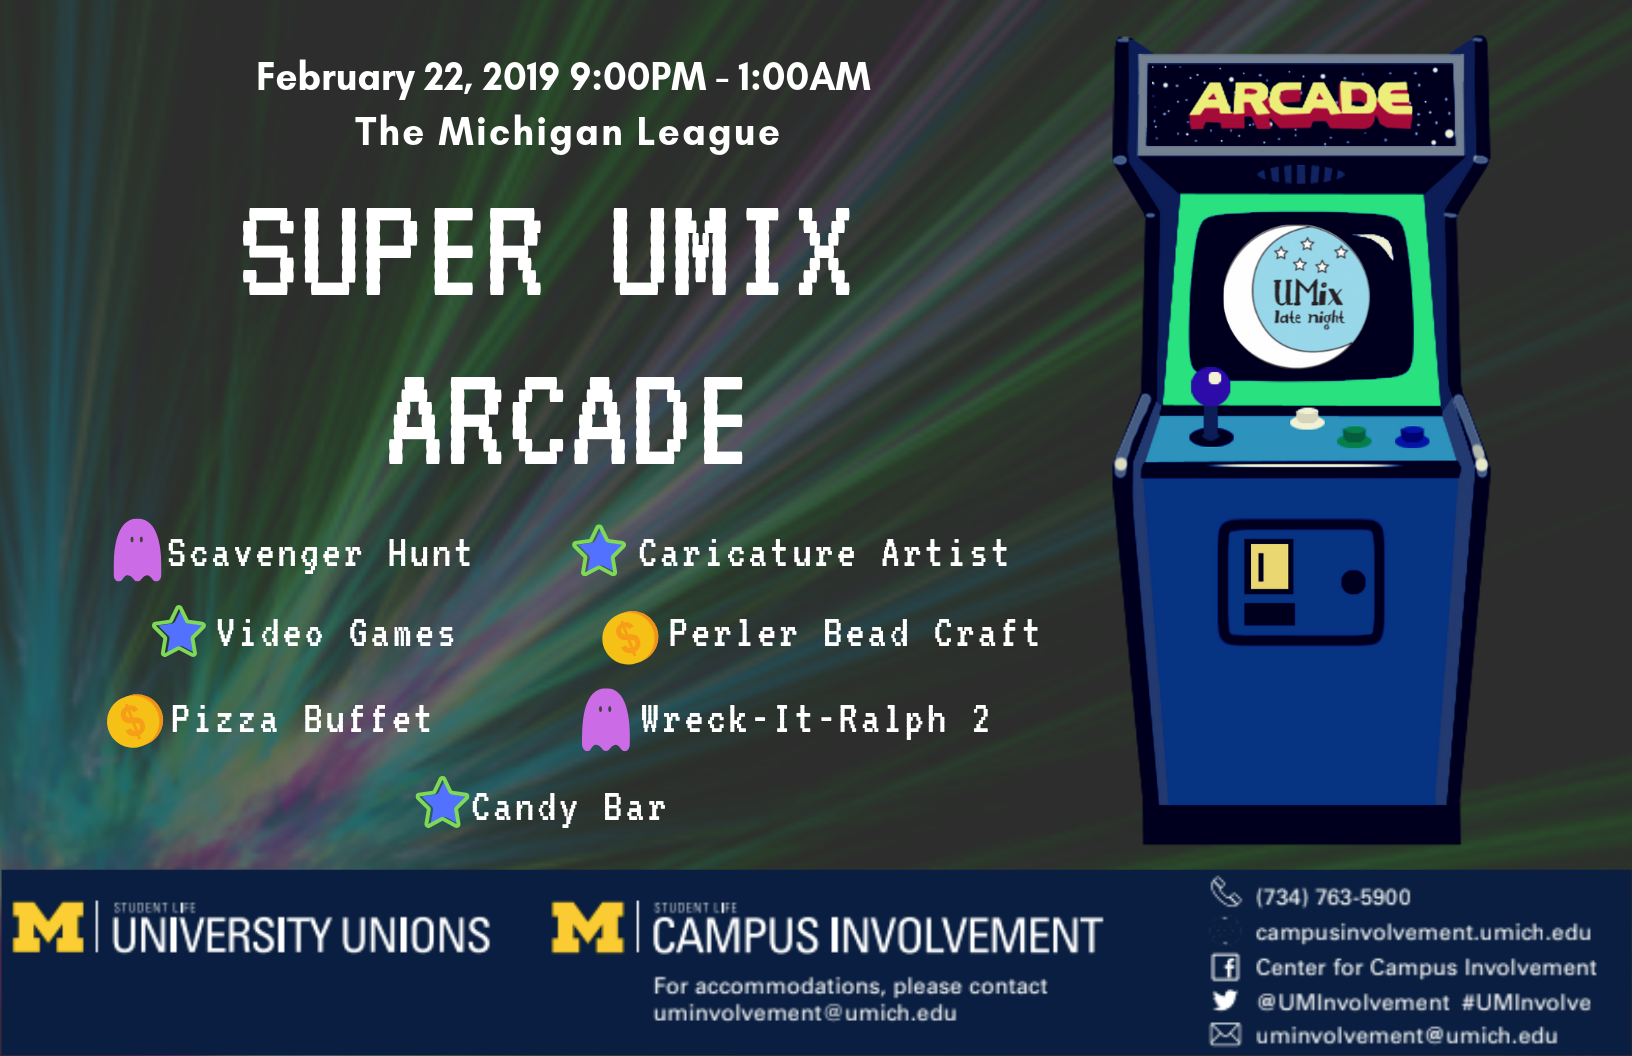 Pleasant Expired Super Umix Arcade Happening Michigan Download Free Architecture Designs Intelgarnamadebymaigaardcom